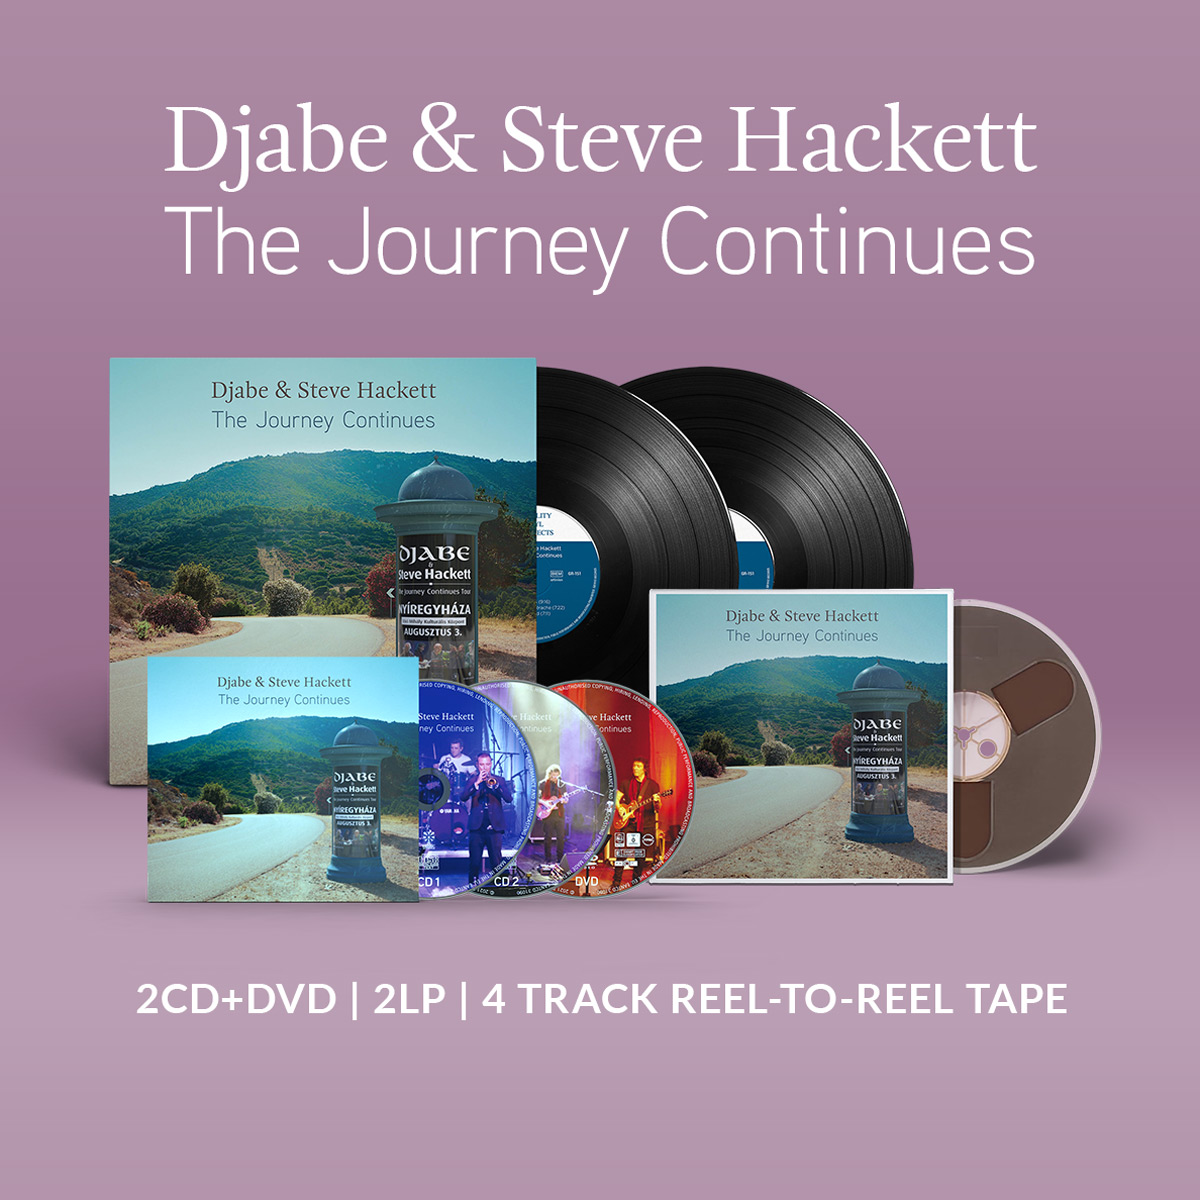 Djabe & Steve Hackett The Journey Continues